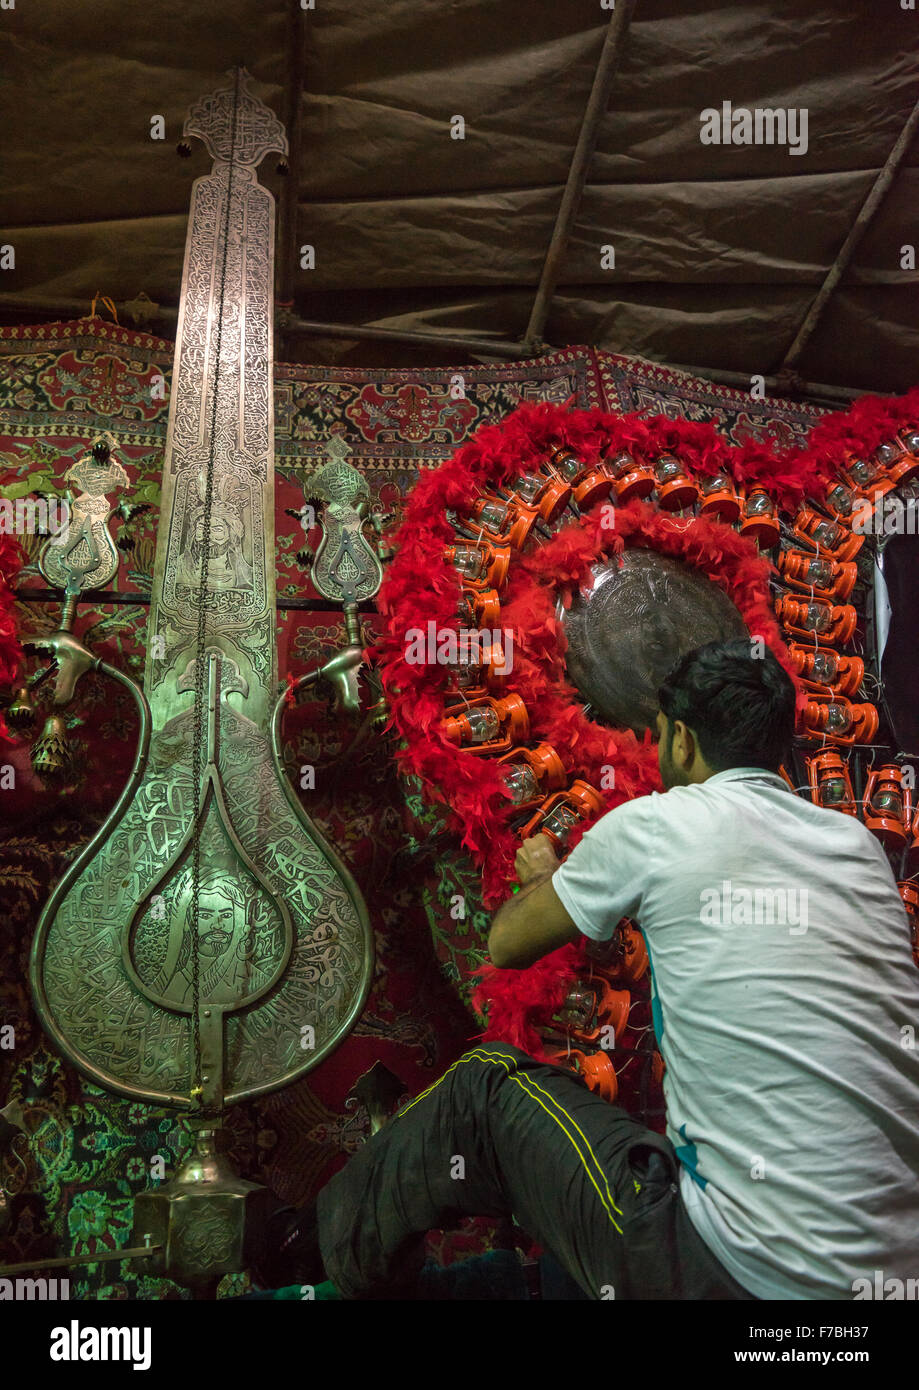 Iranian Shiite Muslim Man Making An Alam On Ashura, The Day Of The Death Of Imam Hussein, Isfahan Province, Kashan, - Stock Image